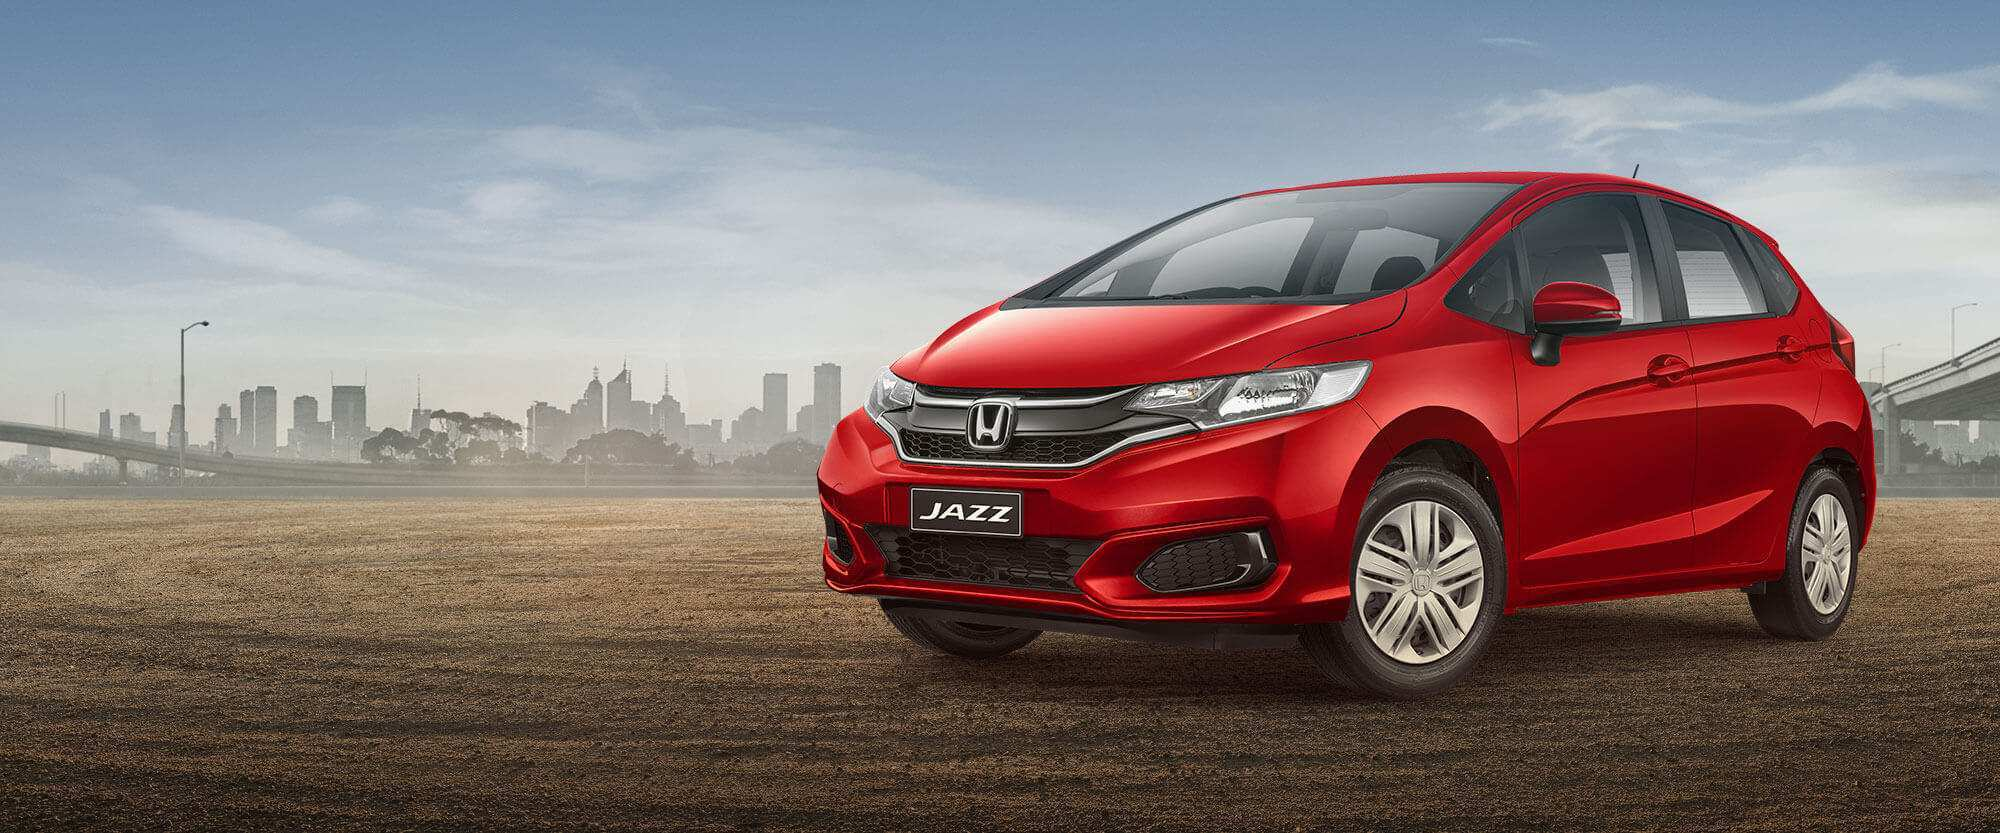 30 The Best Honda Jazz 2020 Australia Spy Shoot